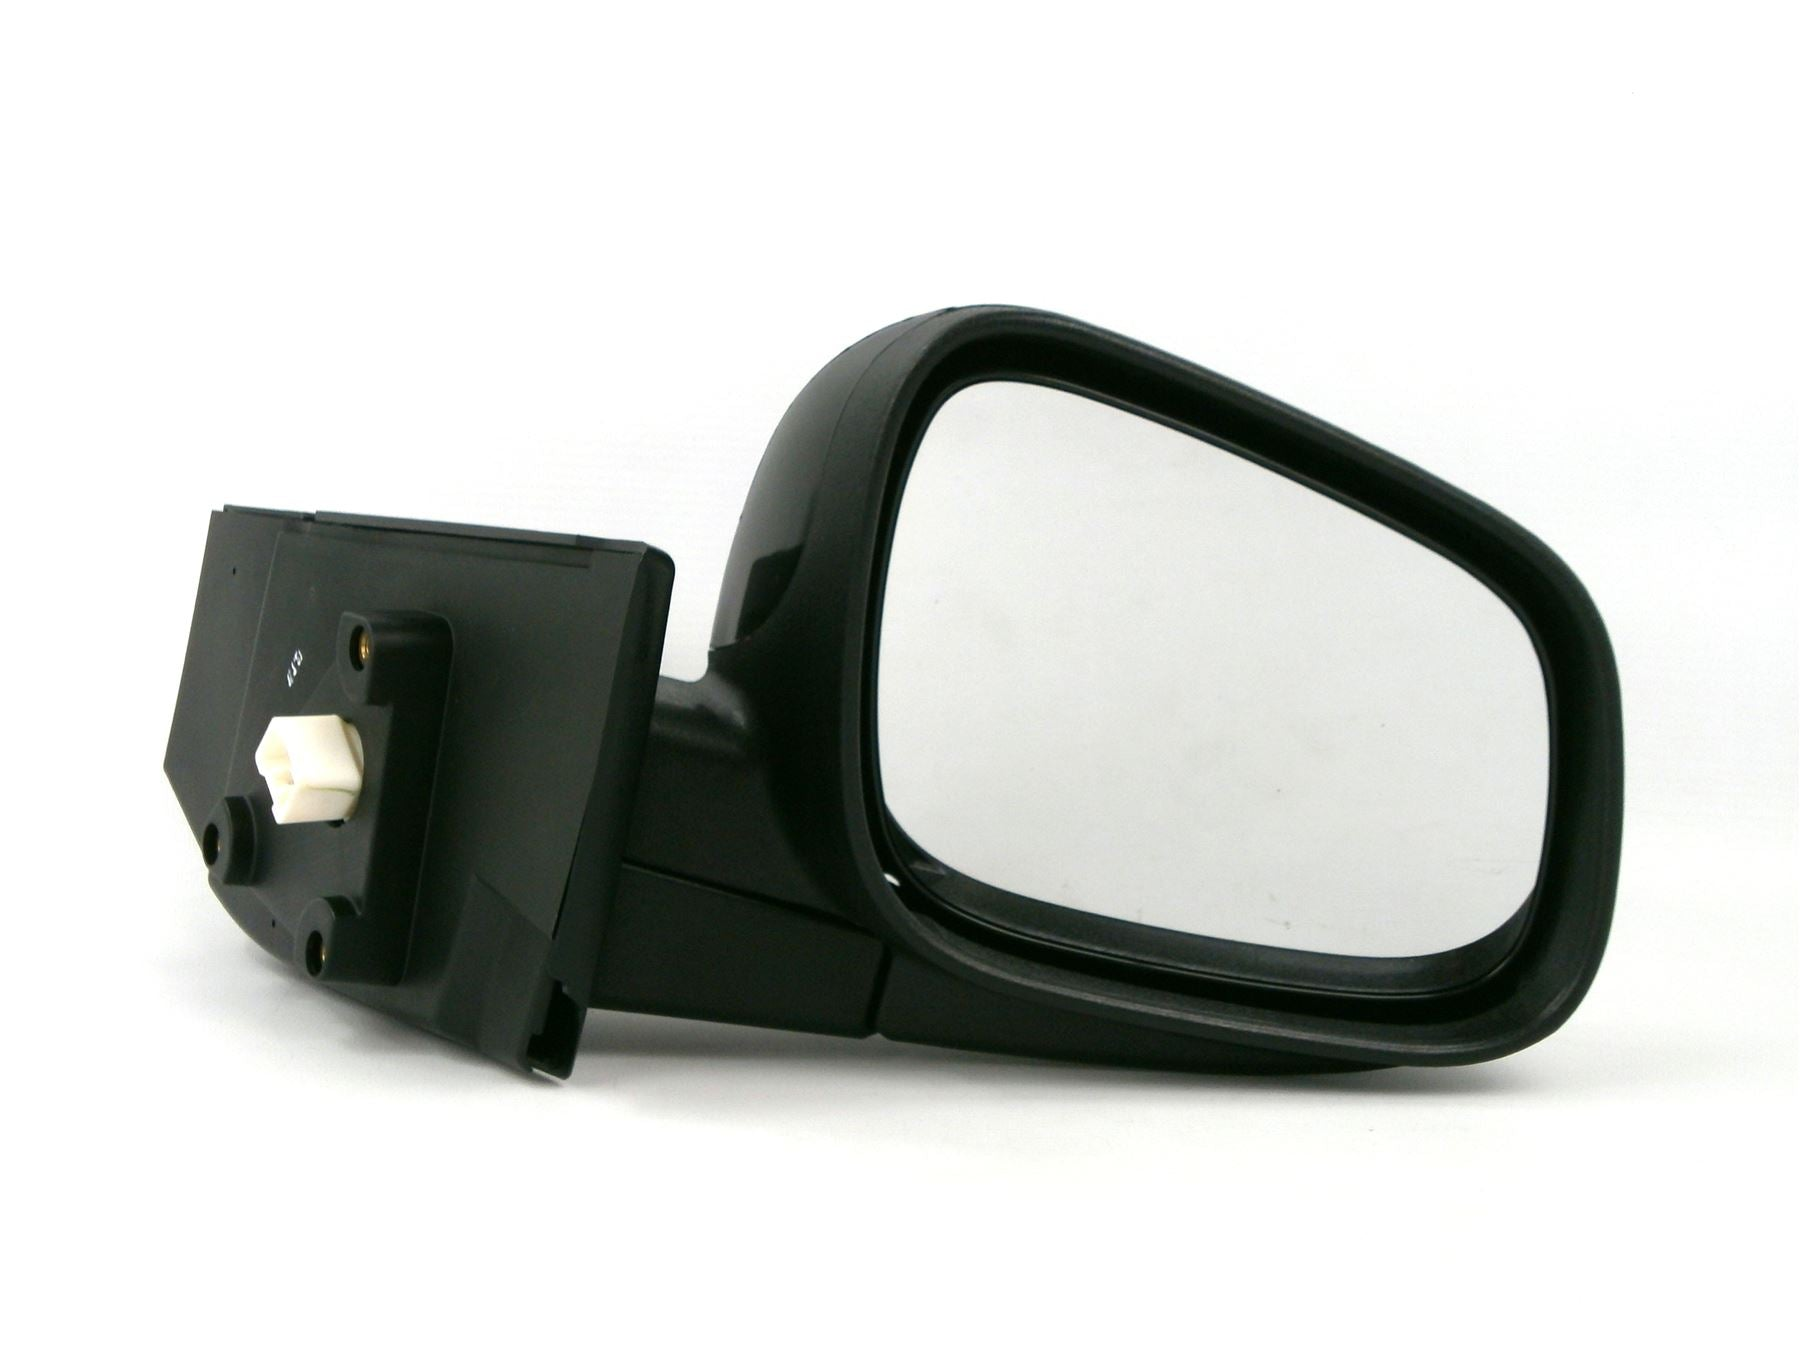 Chevrolet Spark 2009-8/2013 Electric Wing Mirror Heated Black Drivers Side O/S